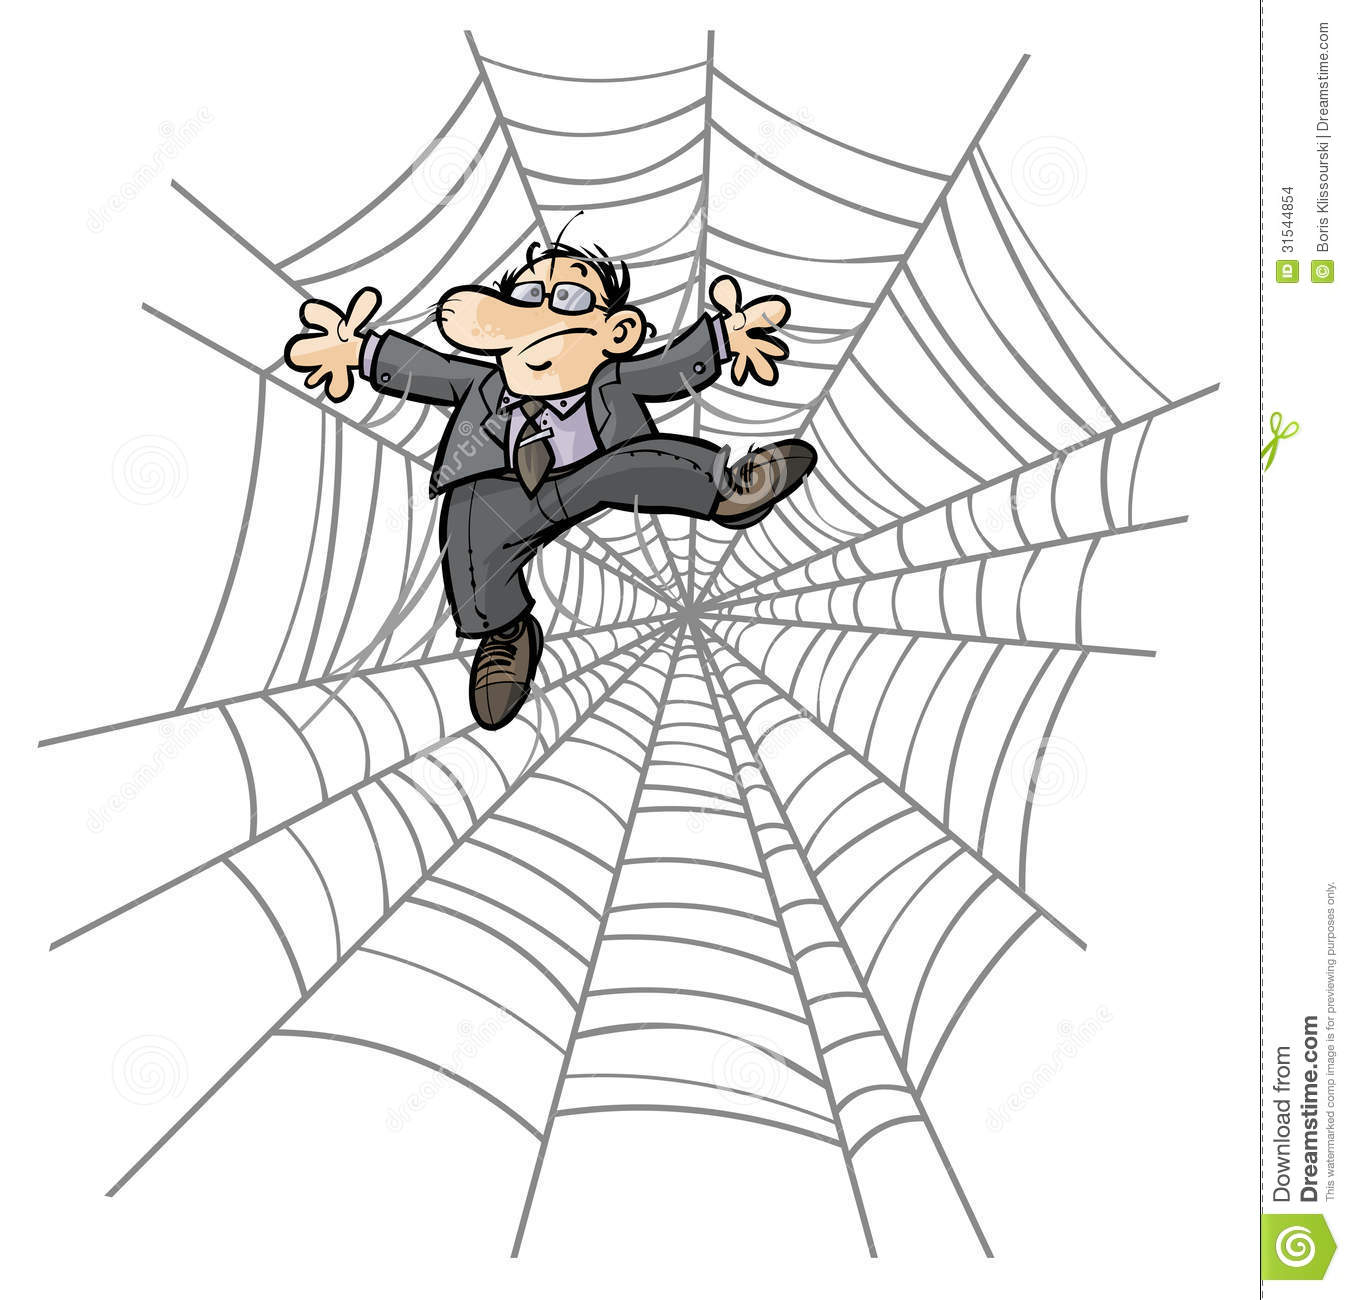 Stock Images Cartoon Business Man Spider Web Image Businessman Image31544854 on scary 3d halloween